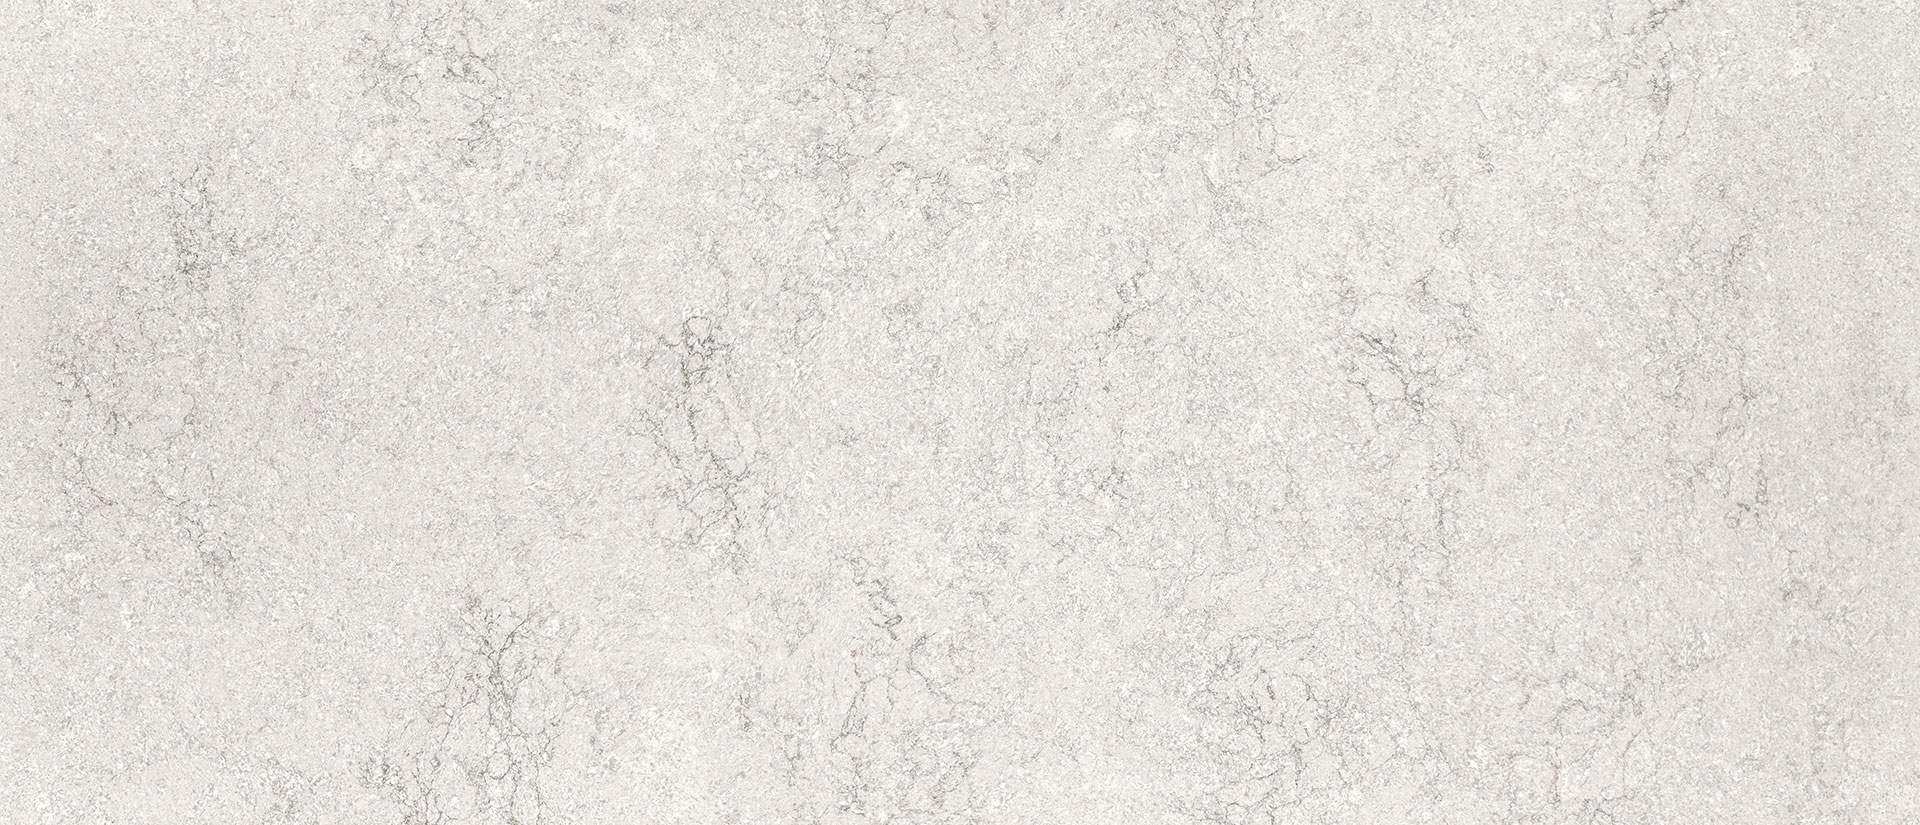 Gray Lagoon Quartz Countertops Concrete Finish | Q Premium Natural